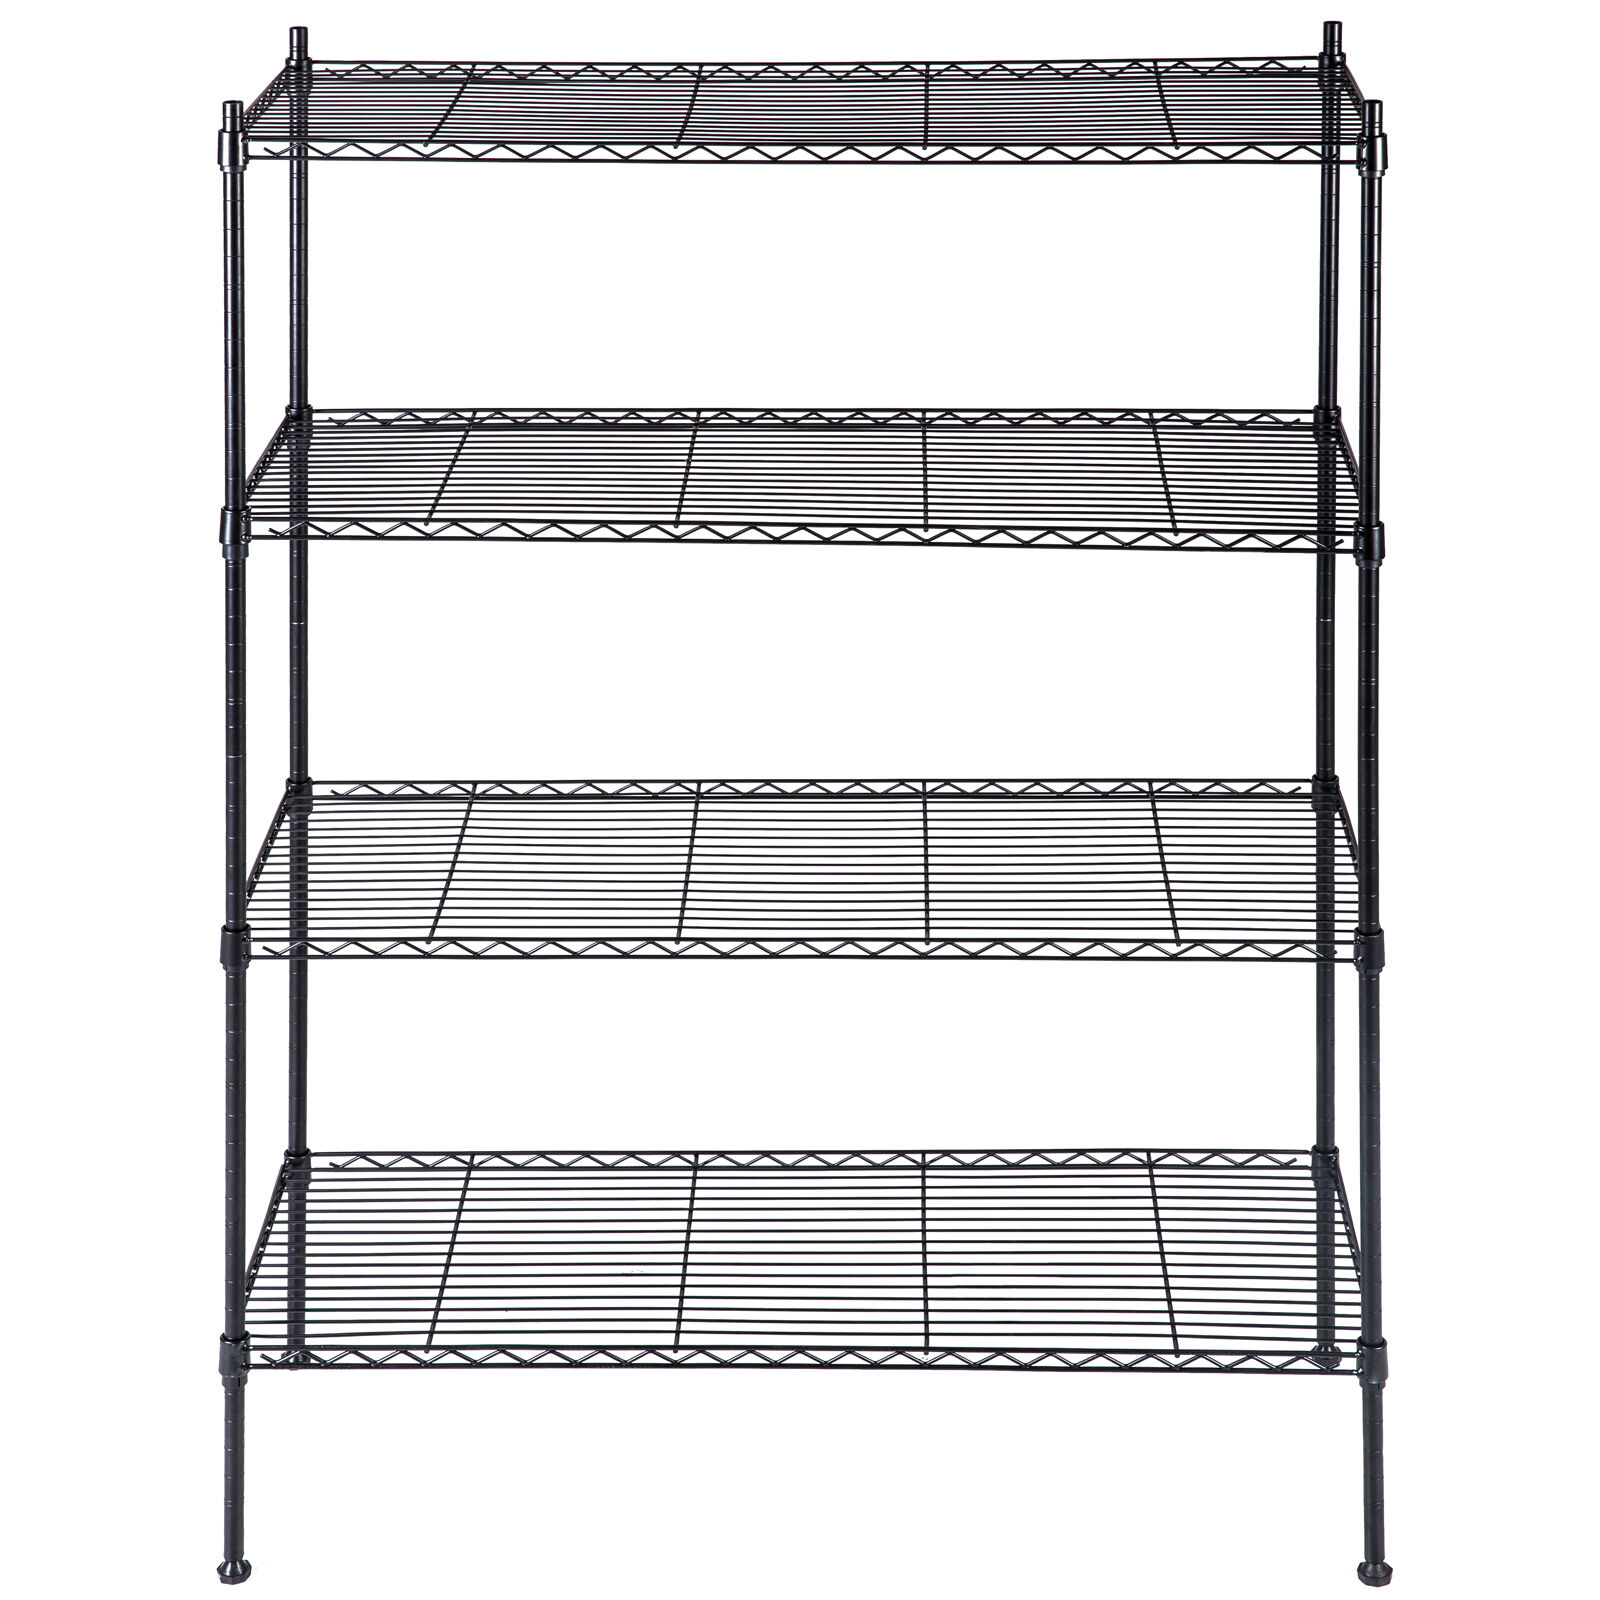 Kitchen Shelf Metal: Black Storage Rack 4-Tier Organizer Kitchen Shelving Steel